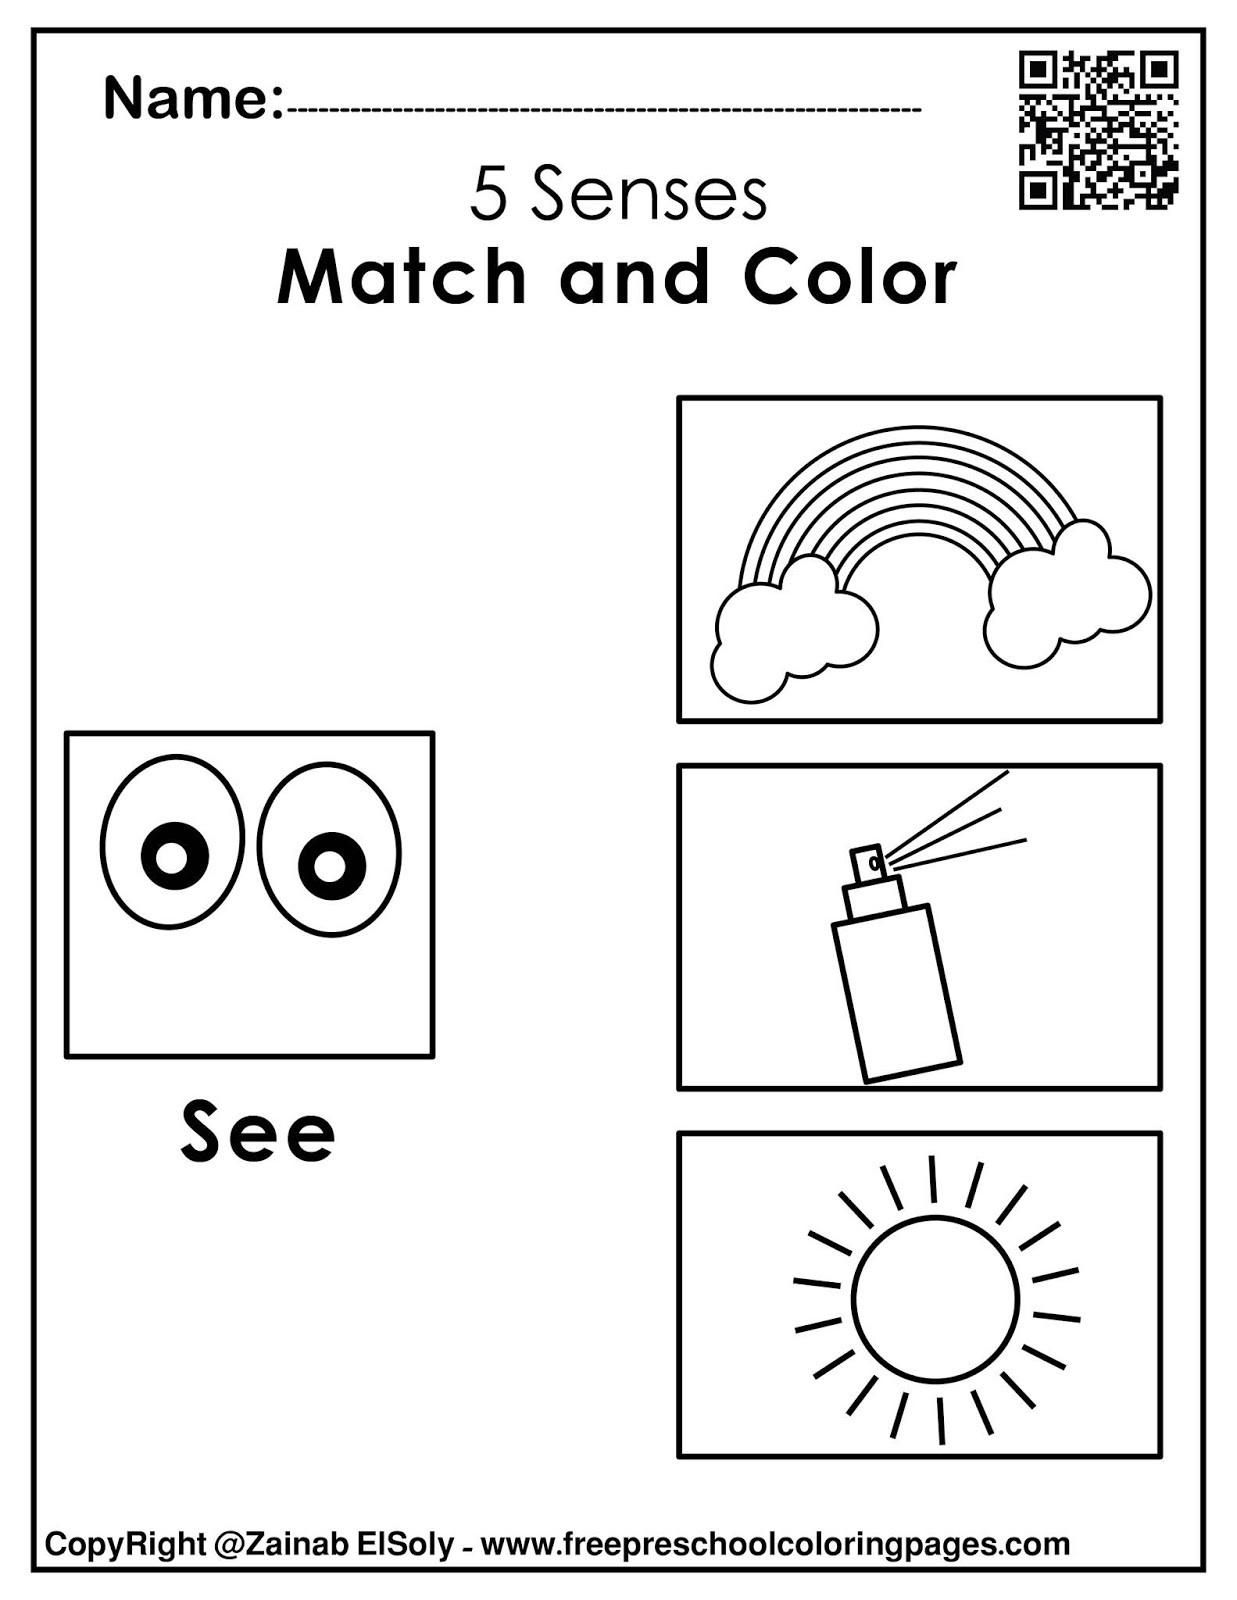 5 Senses Printable Worksheets Set Of 5 Senses Activities for Kids